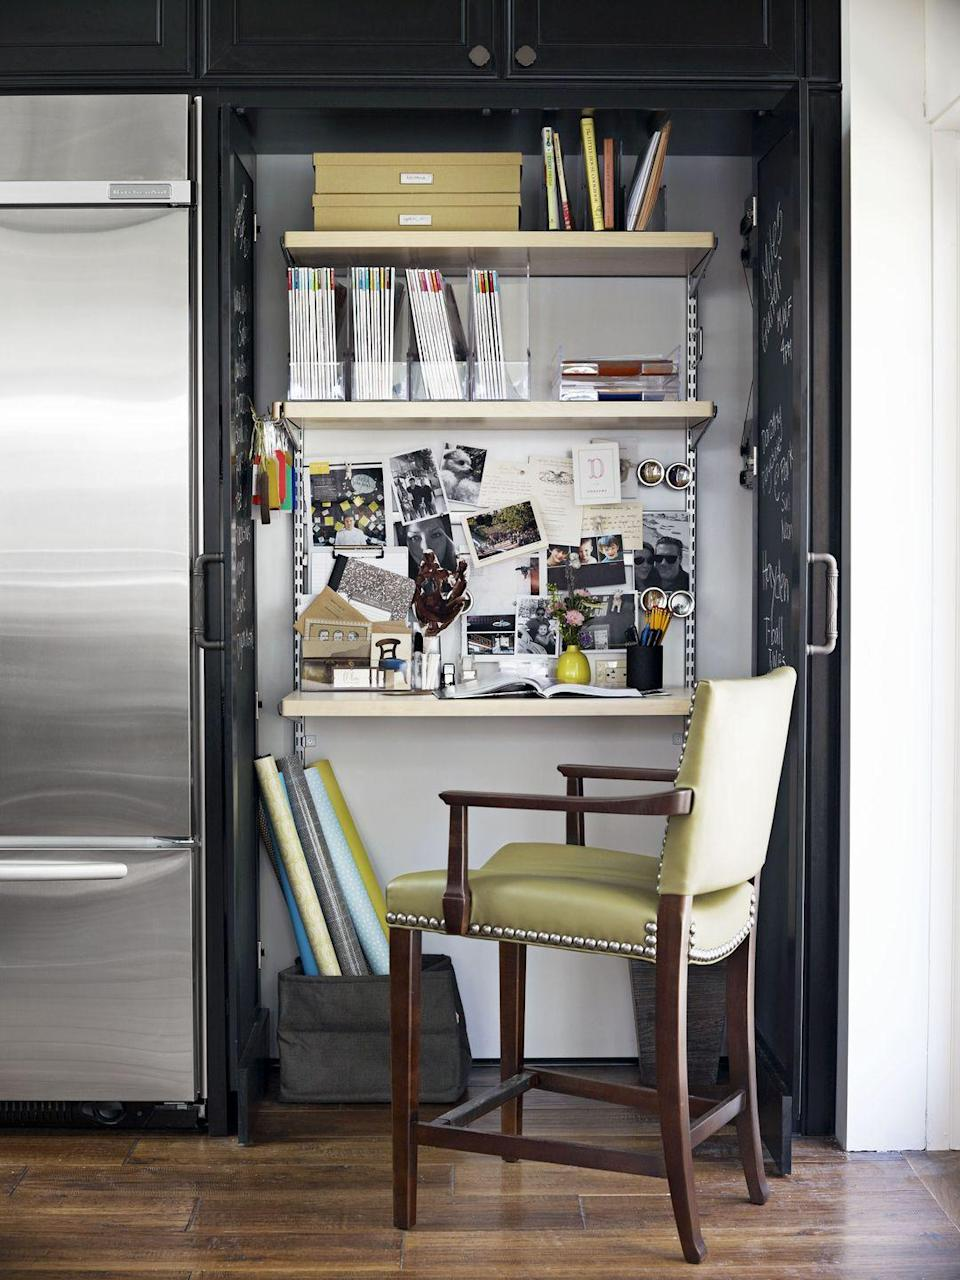 <p>This converted kitchen pantry proves that you can make just about any space work-friendly with the right organizational tools. If your surface area is large enough, use trays on the desk to corral odds and ends and keep your papers organized. If you don't have room on your desk, secure a corkboard to the wall and take advantage of vertical real estate.</p>